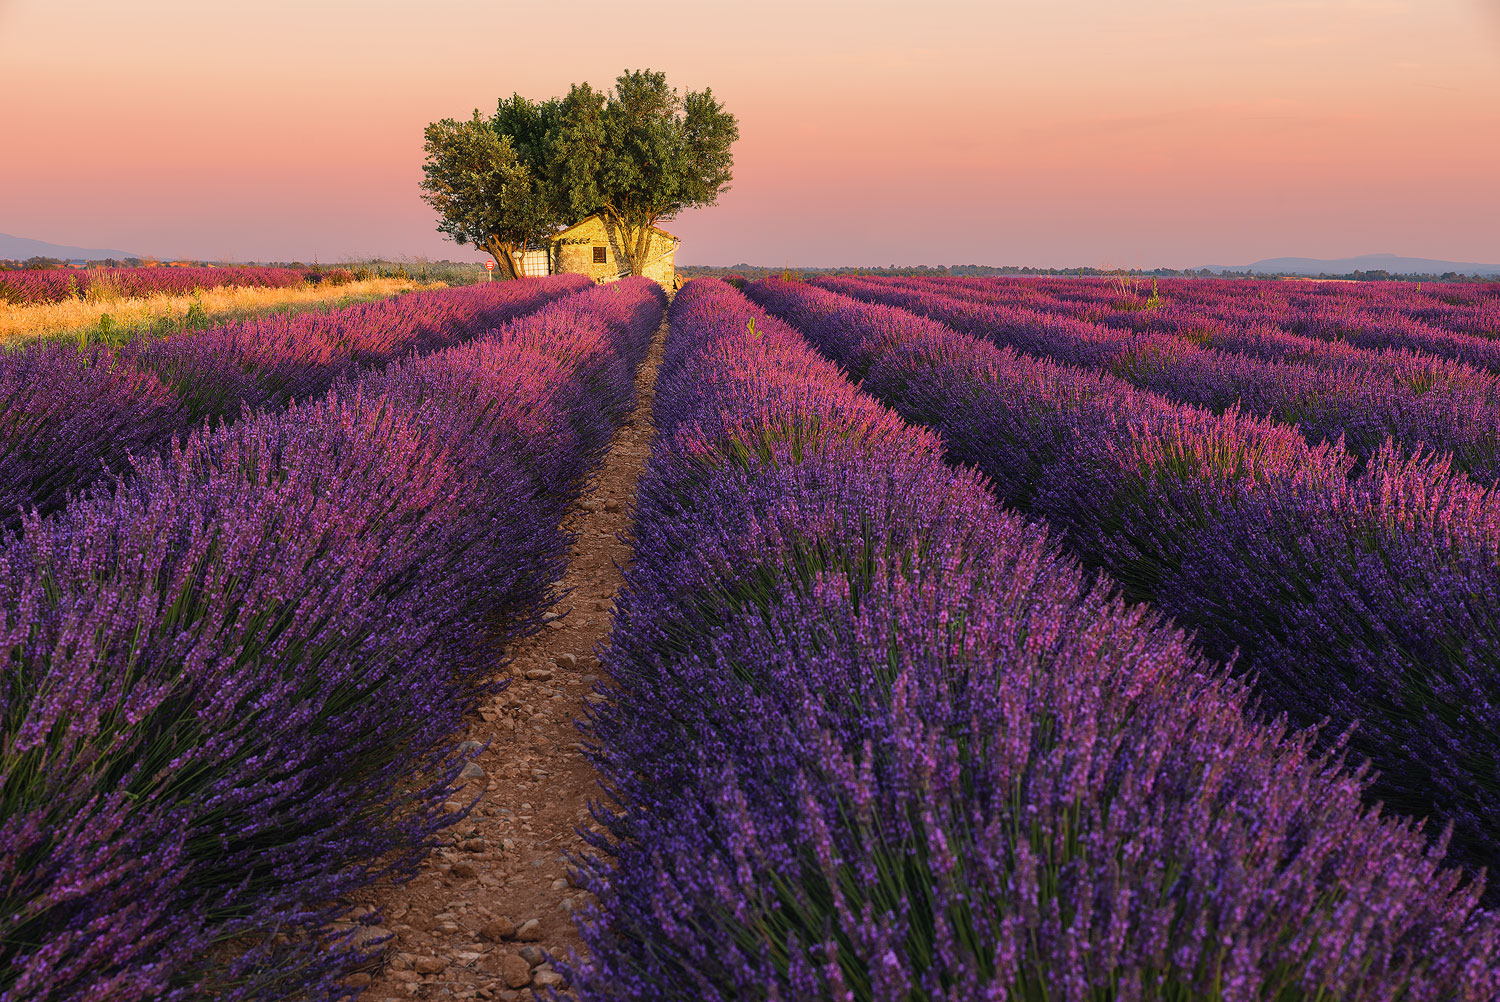 Sunset in lavender fields of Provence at golden hour